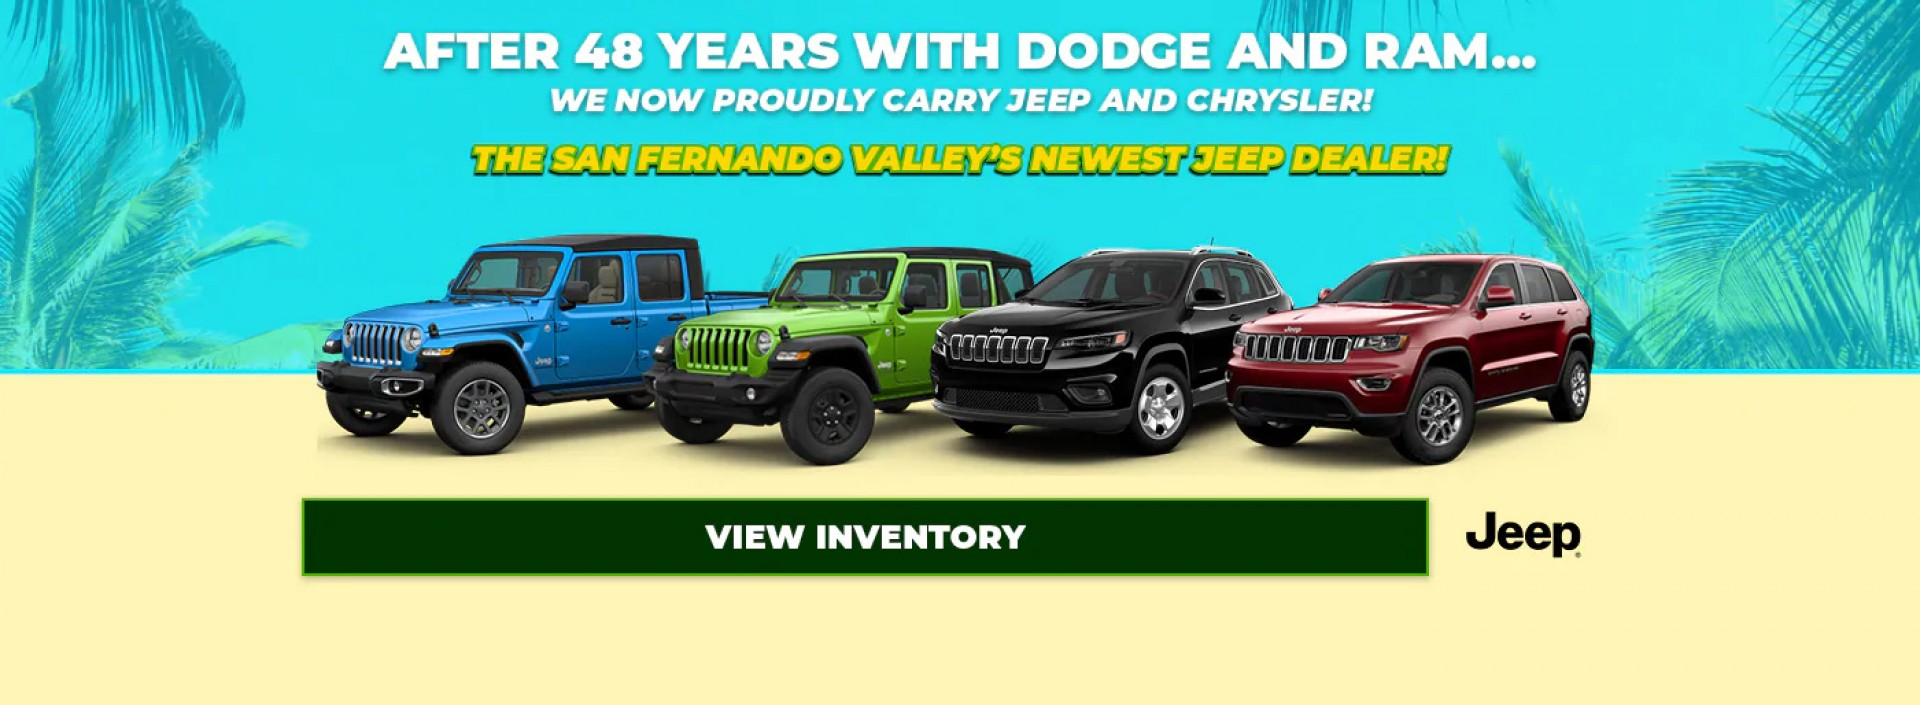 After 48 years with Dodge and Ram, we now proudly carry Jeep and Chrysler. San Fernando Valley's newest Jeep dealer!